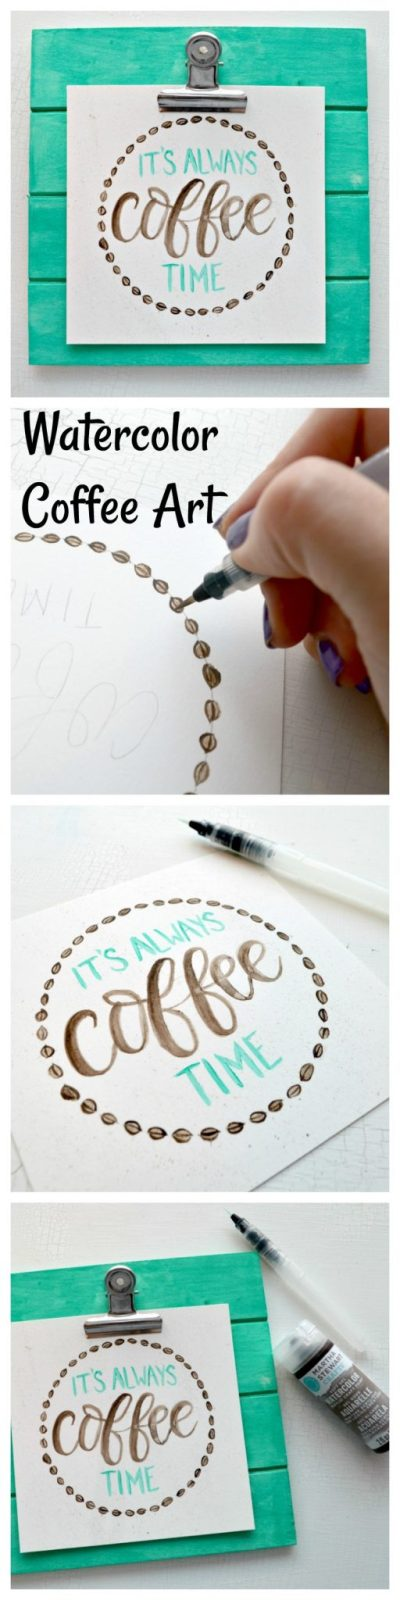 Hand Lettered Coffee Art with Watercolor Paints